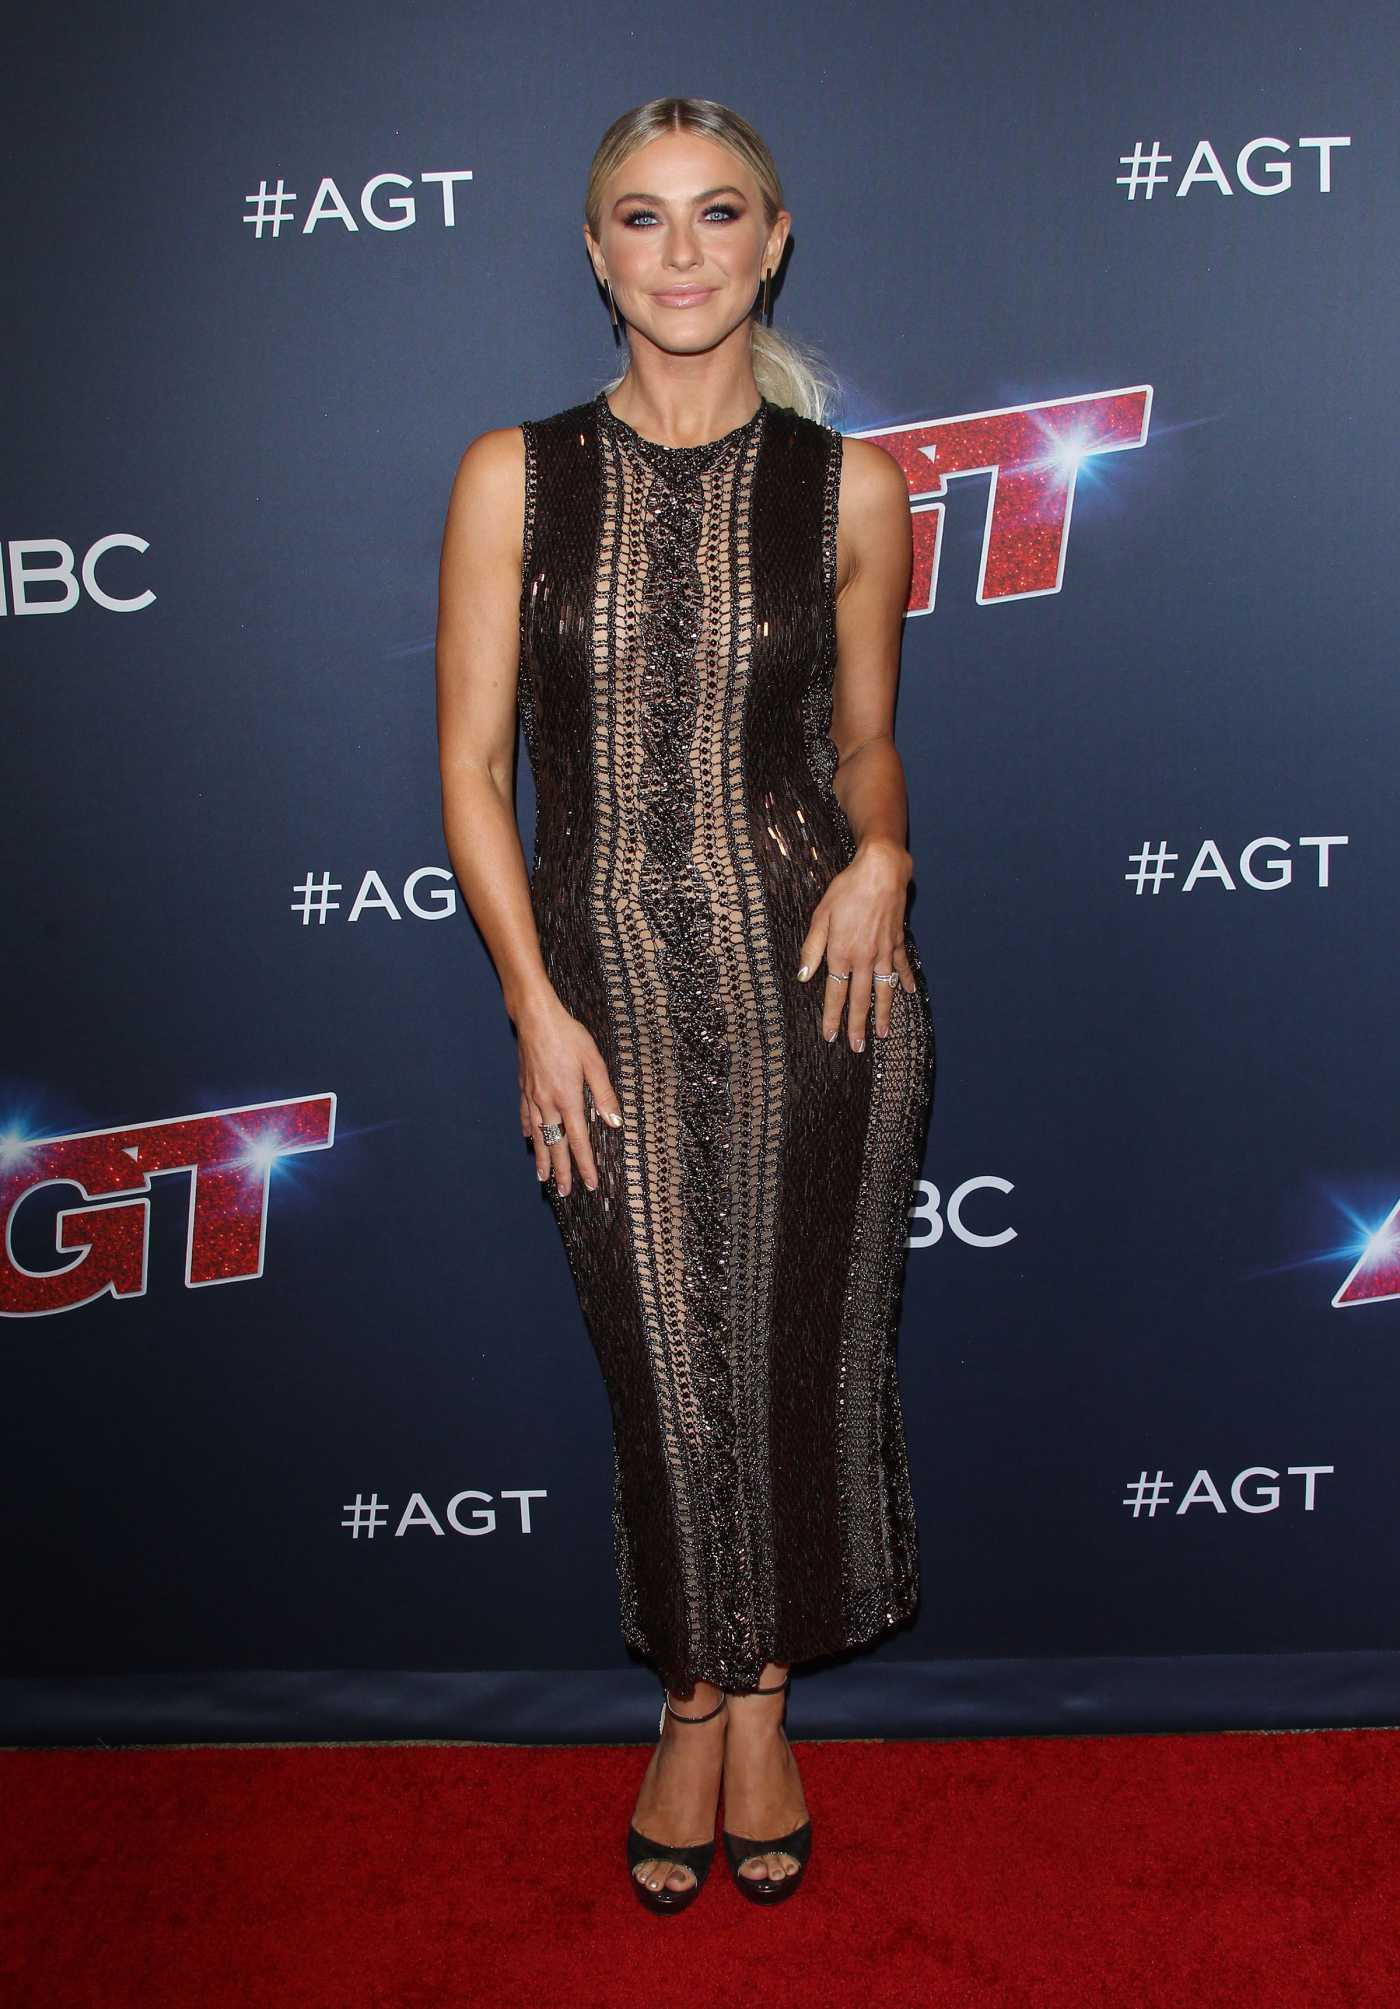 Julianne Hough Attends America's Got Talent Season 14 Live Show Red Carpet at Dolby Theatre in Hollywood 08/27/2019